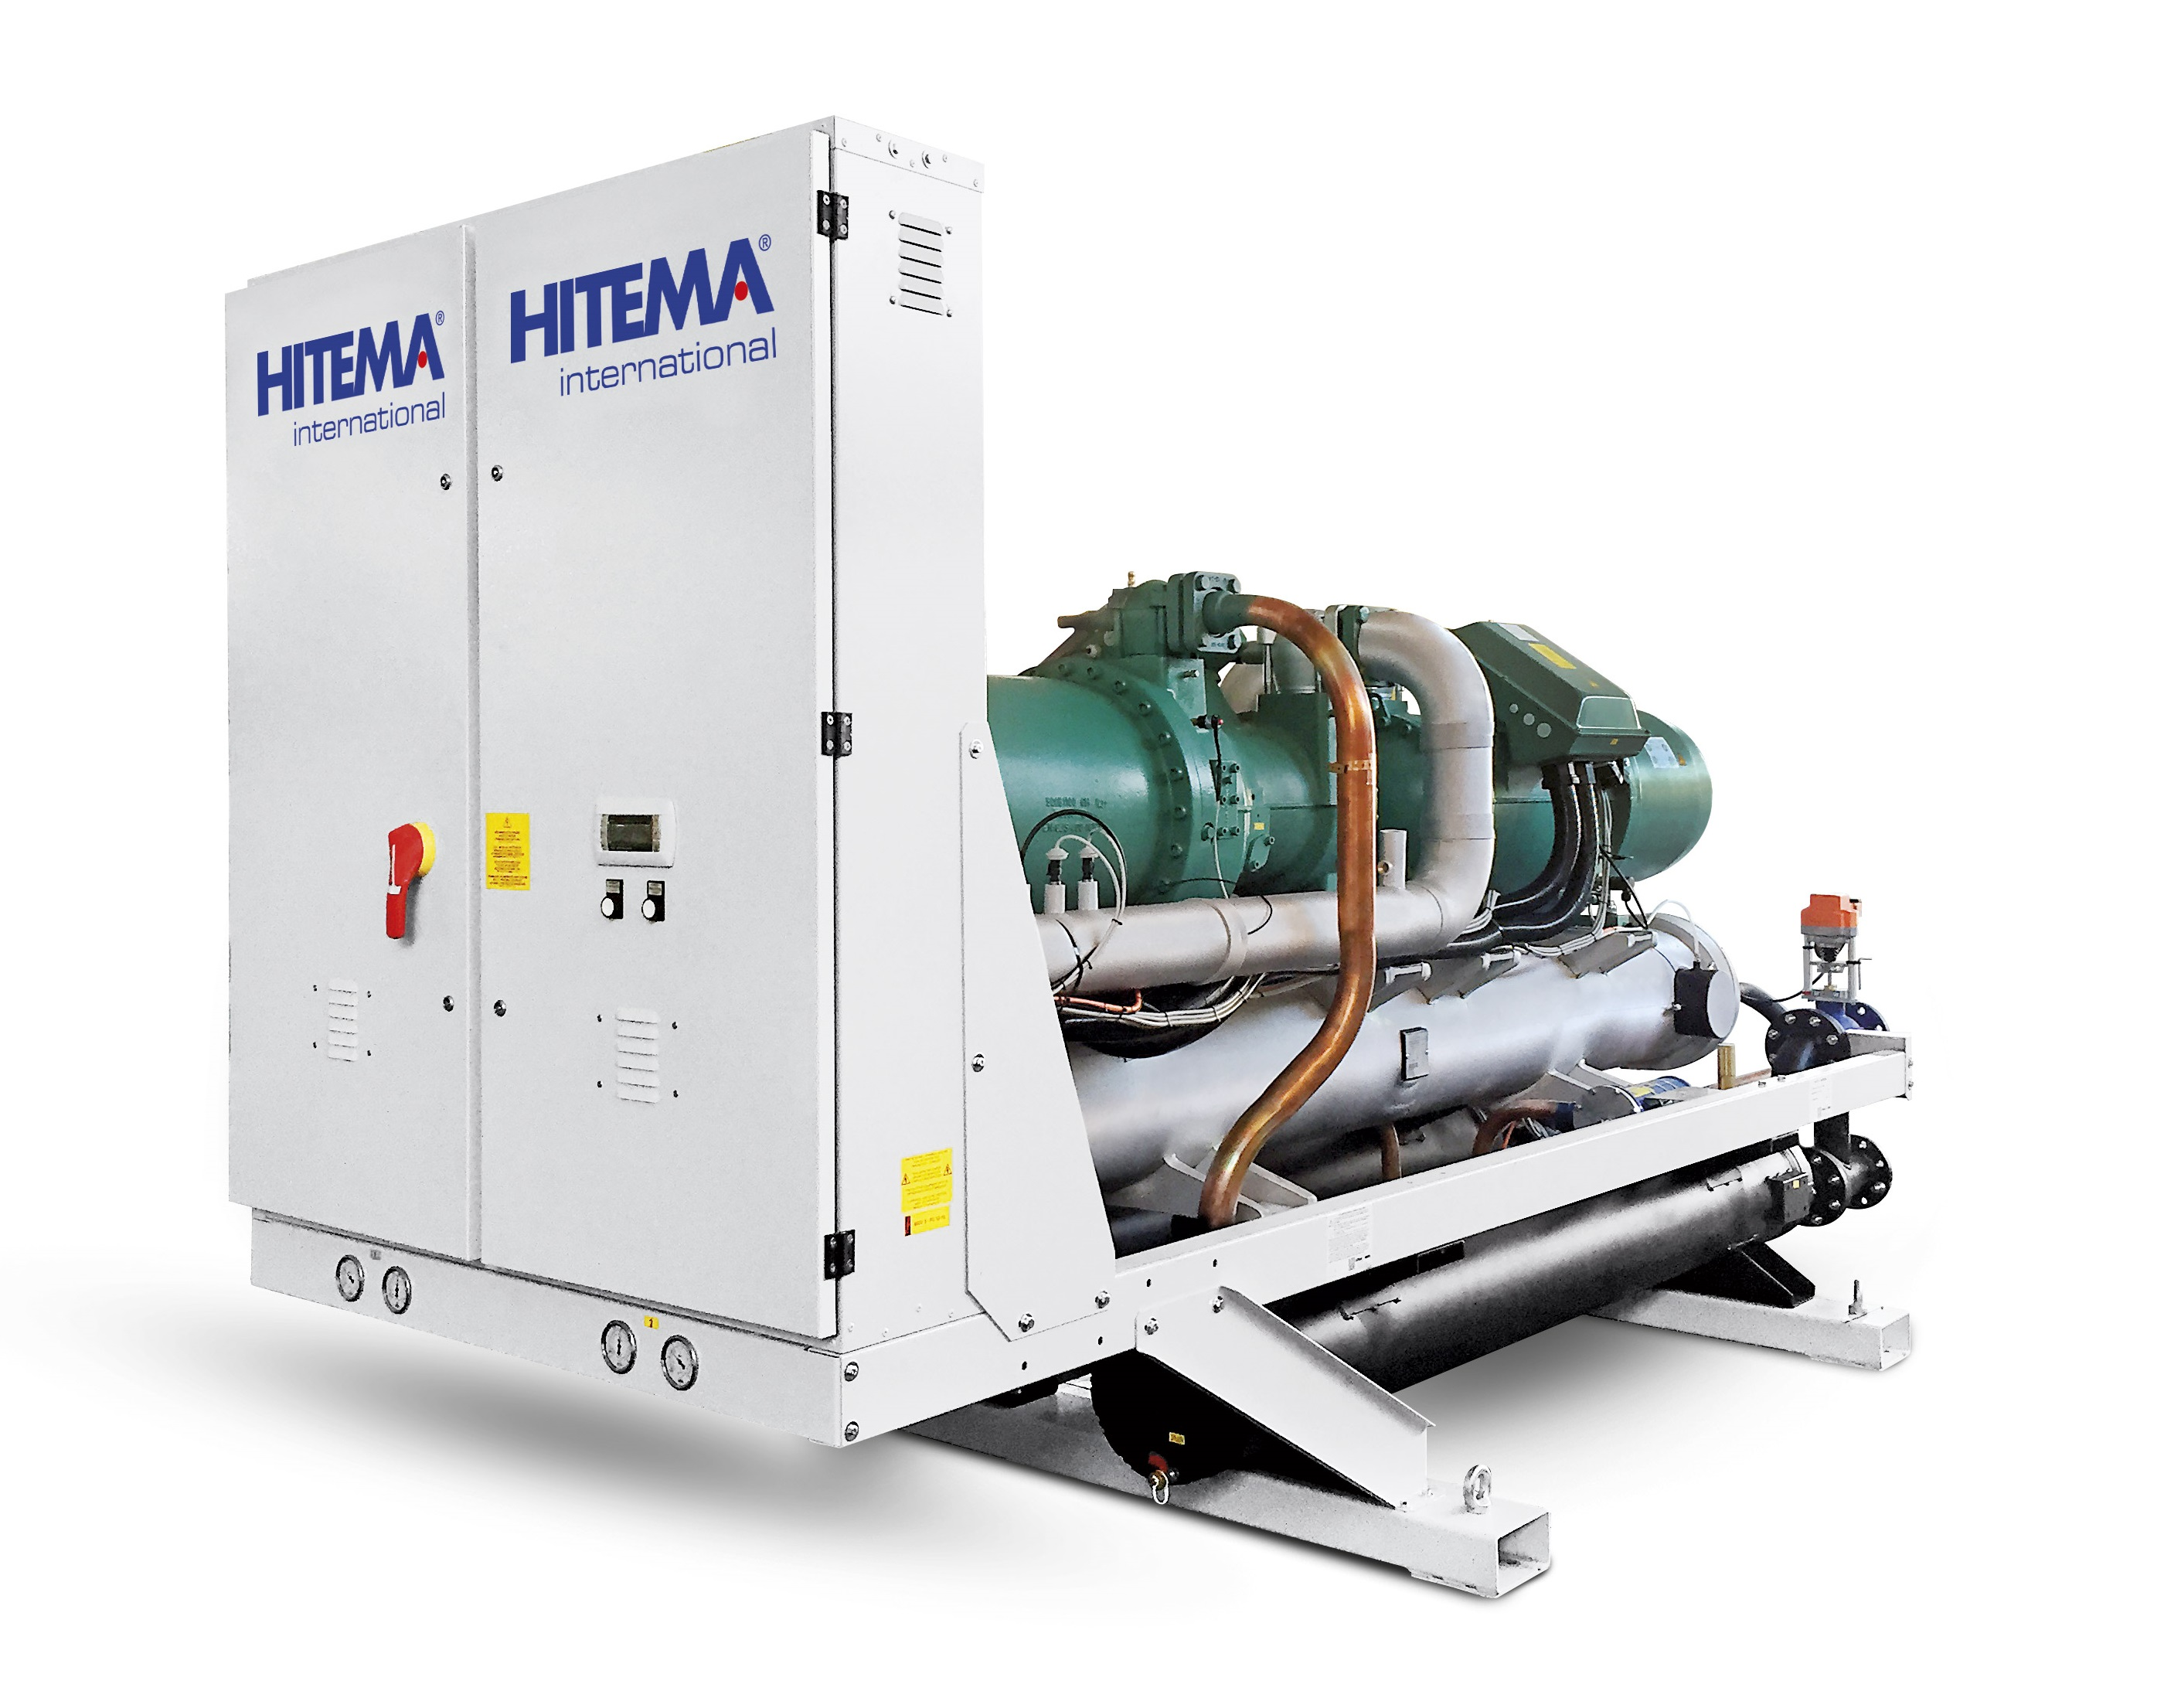 Hitema - Model EWB / CWB Series - Watercooled / Condenserless Liquid Chillers Cooling Capacity Range 291kW - 2240kW for Wineries, Agriculture & Farming & More